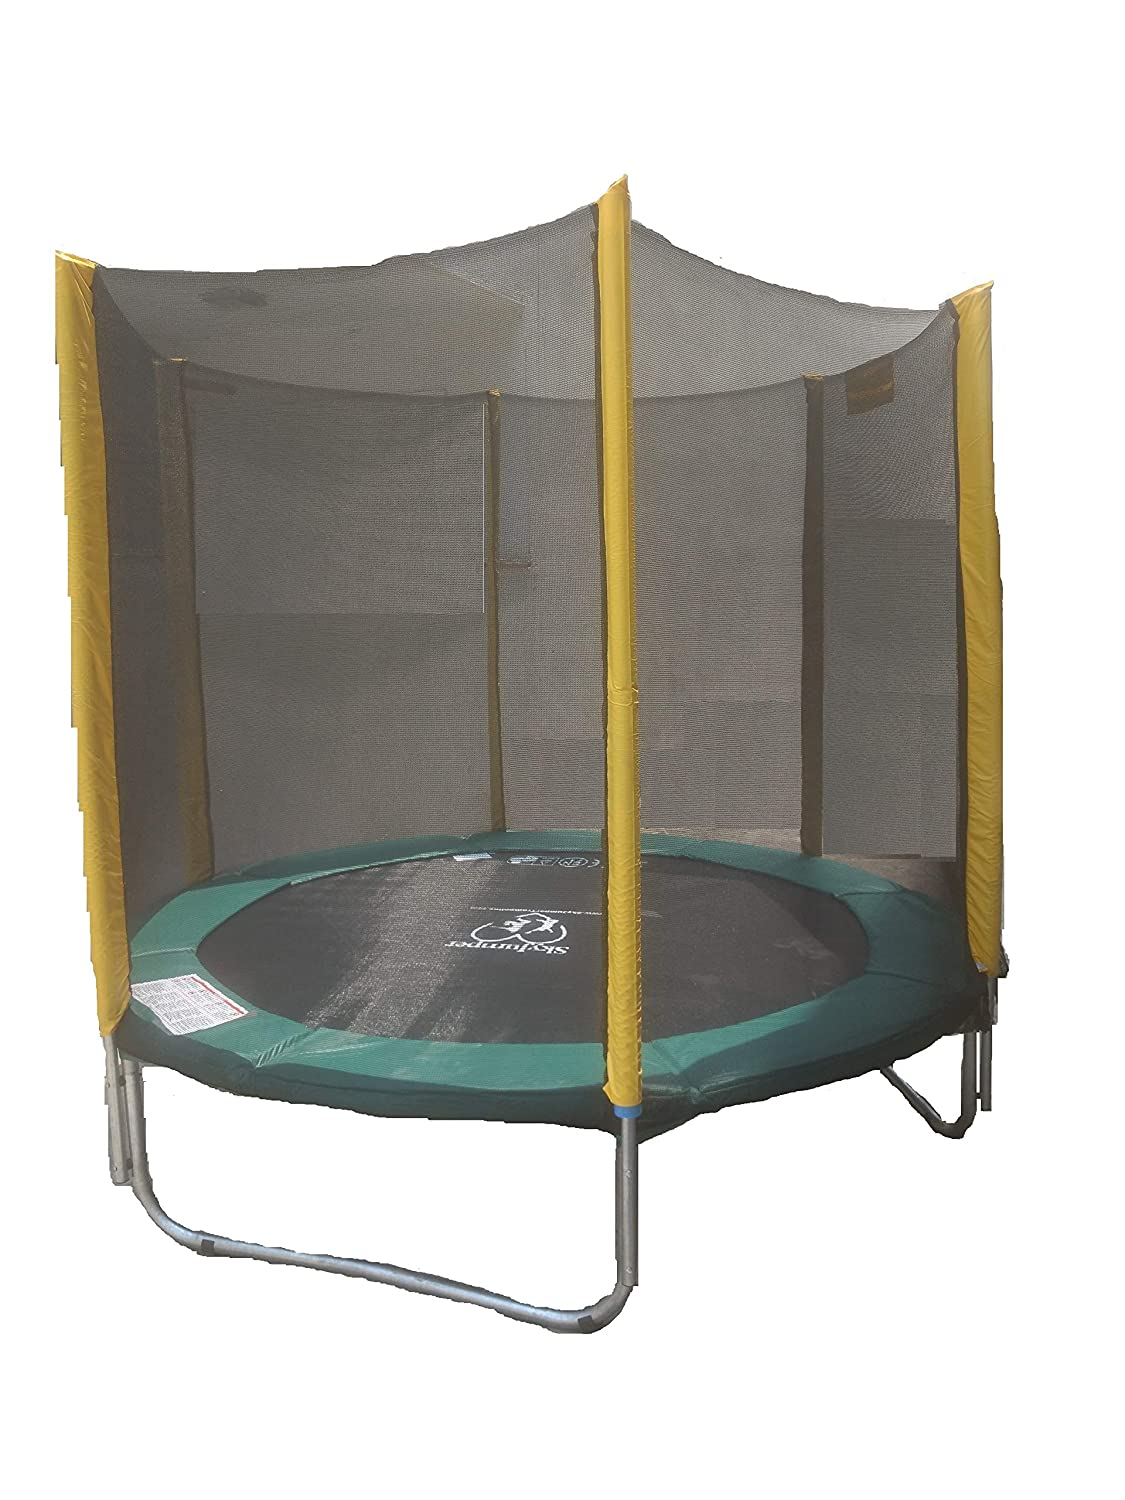 8 Feet Outdoor Jumping Trampoline with Net